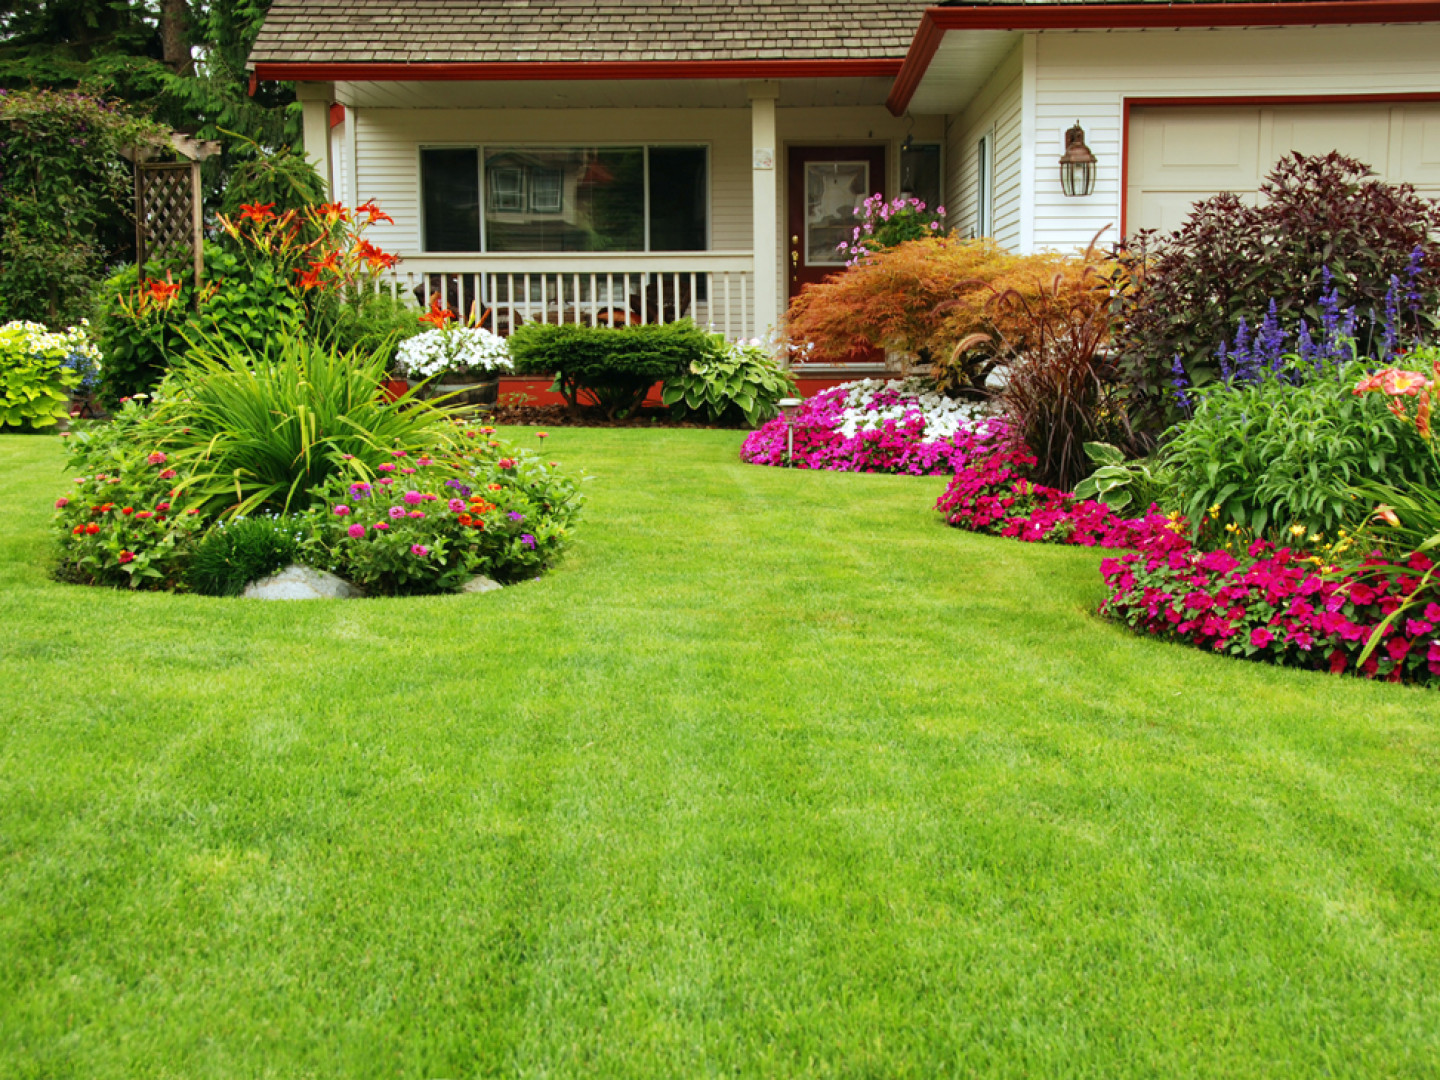 What can you expect from our lawn maintenance company?